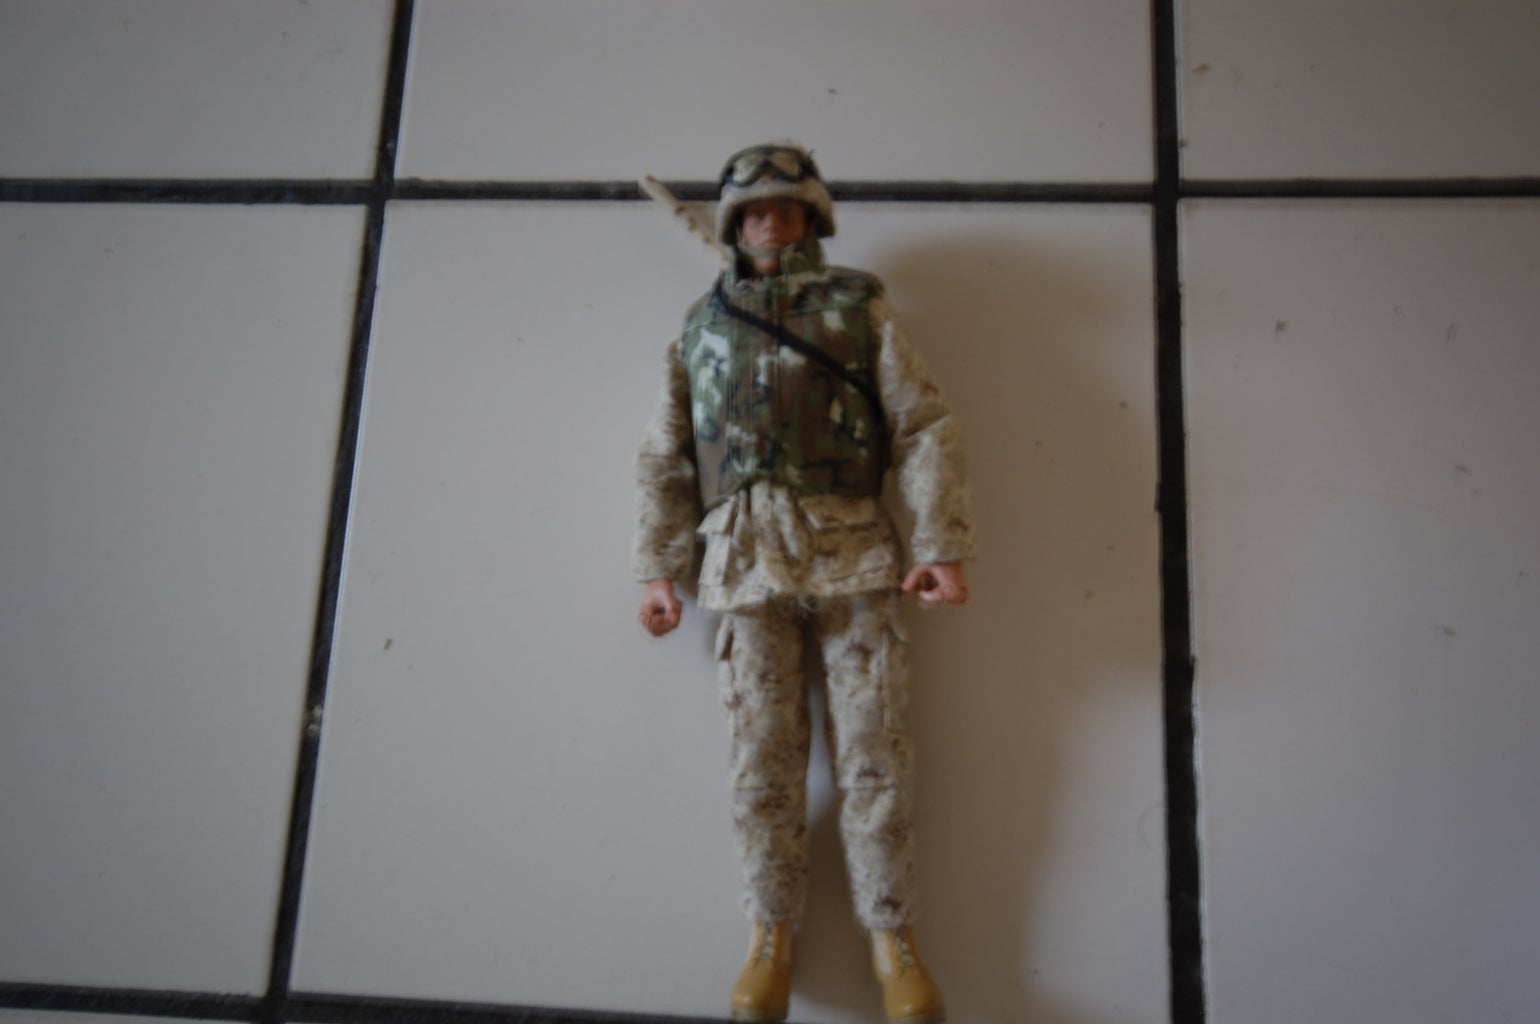 How to Tell If Your 12 Inch GI Joe Is Authentic or Fake